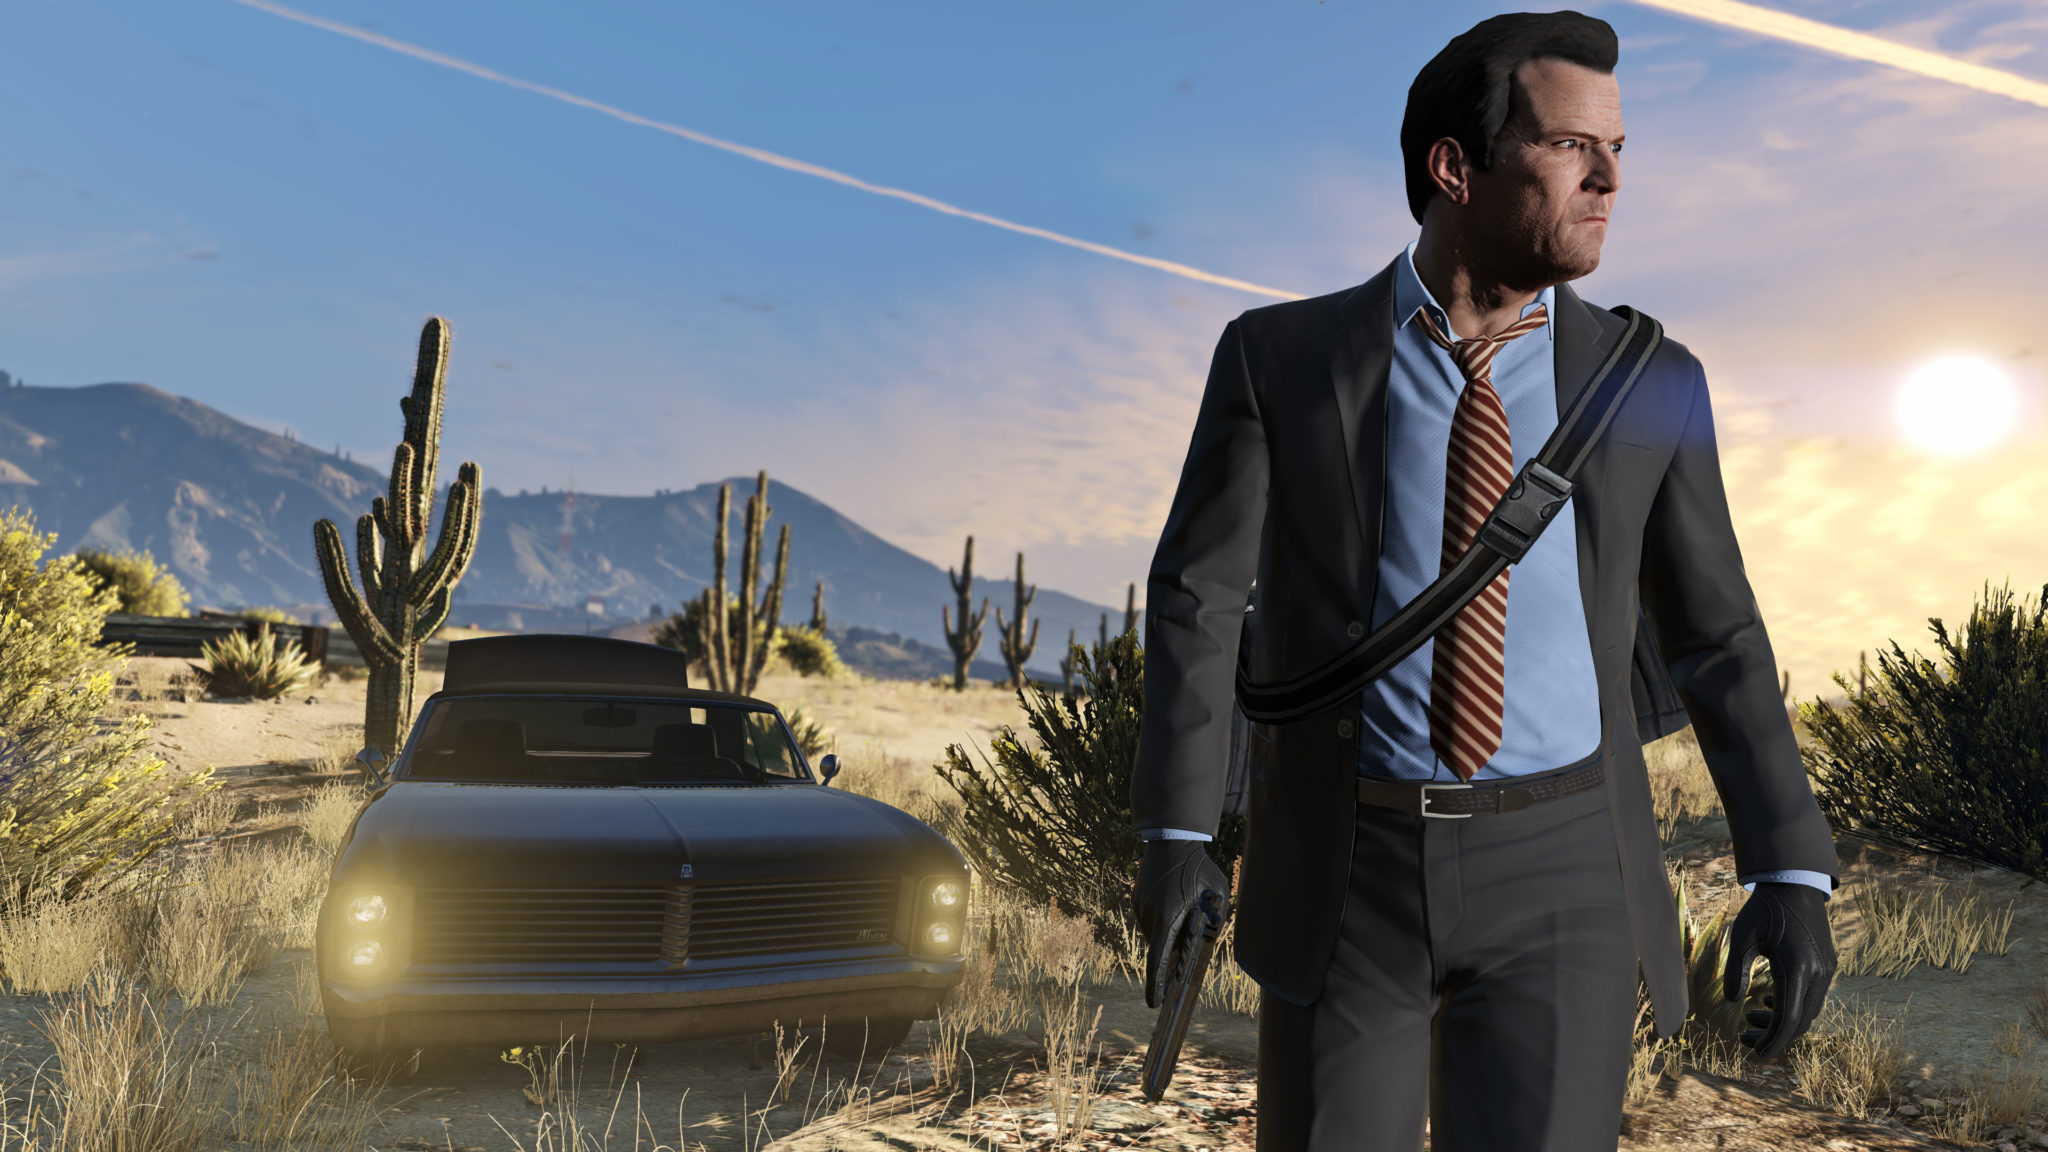 Grand Theft Auto V is headed to PlayStation 5 in 2021.